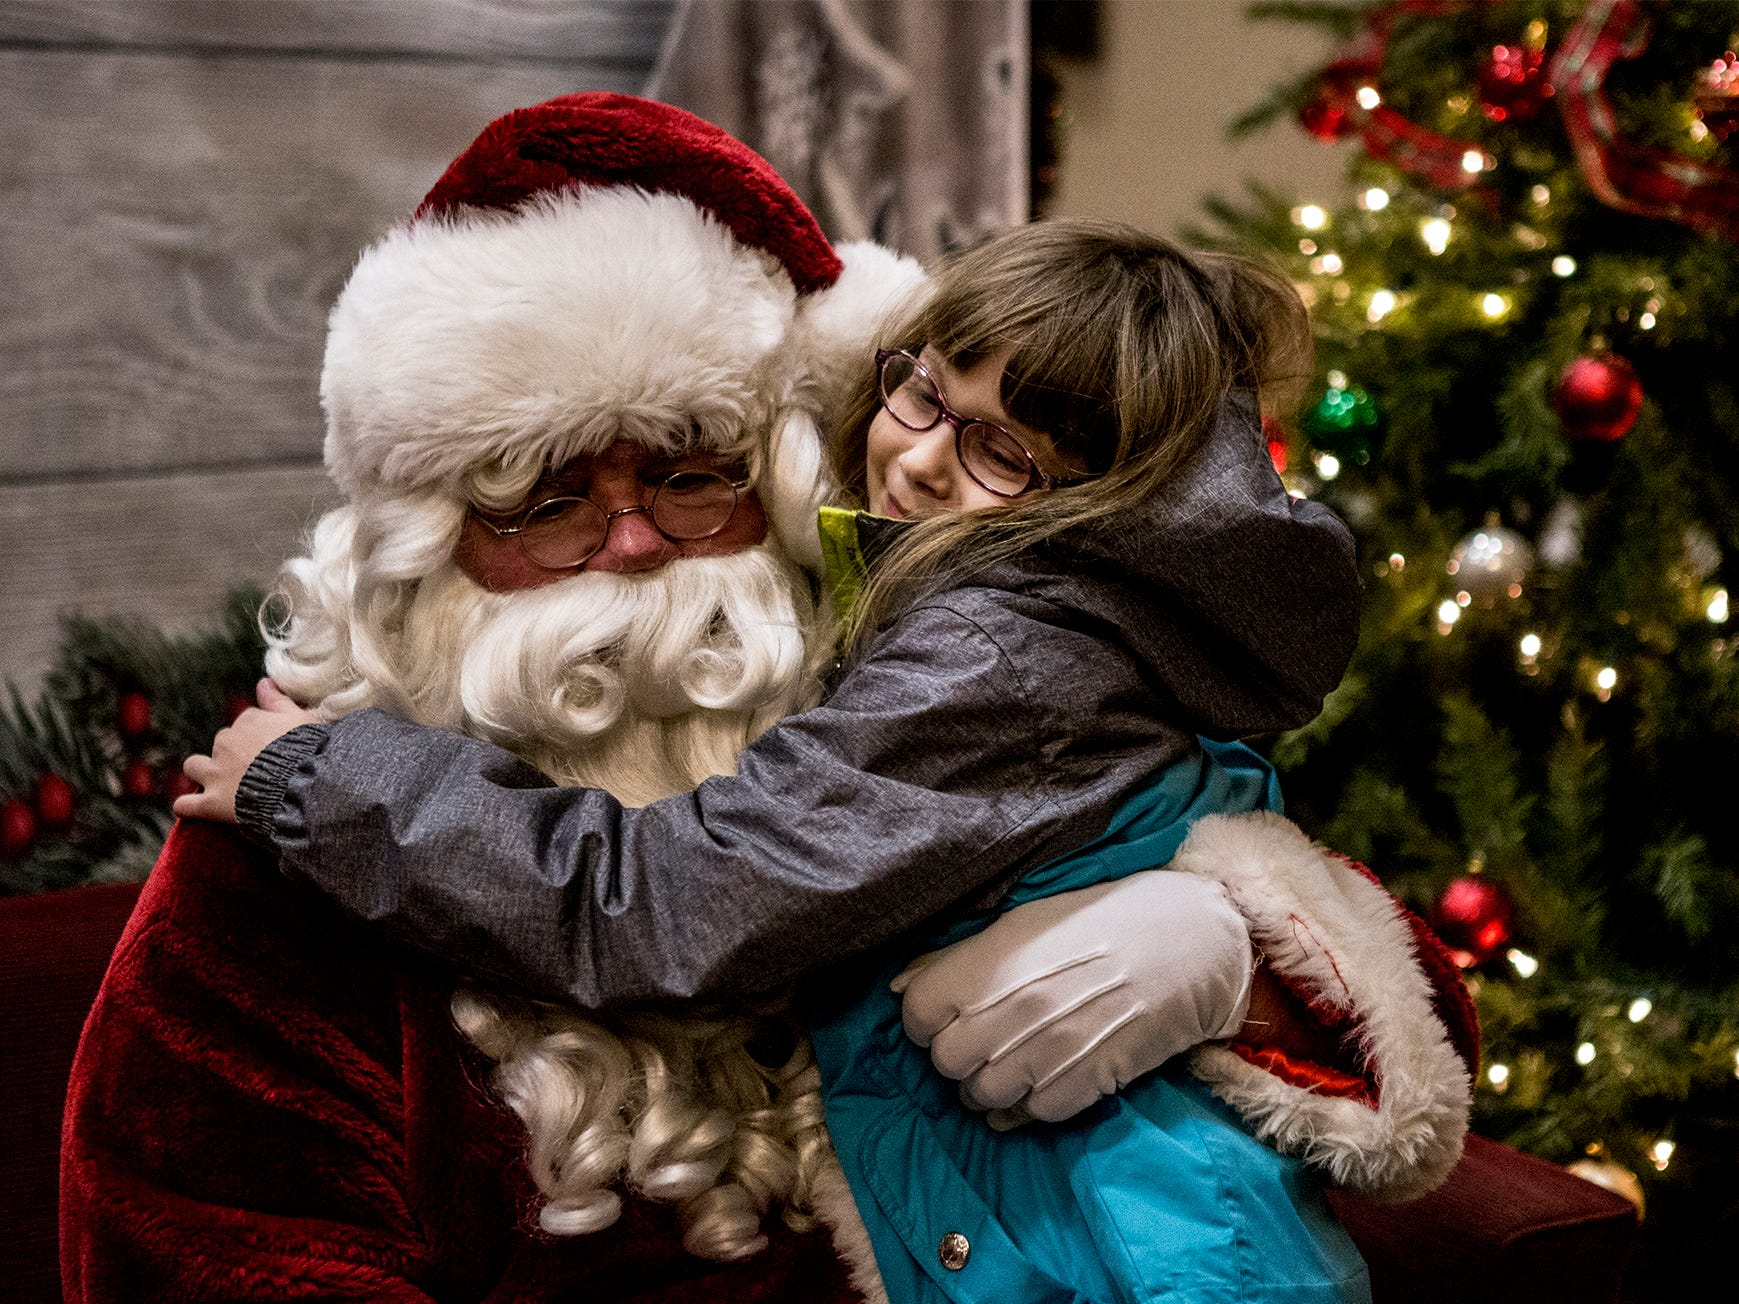 Kaylynn Duncun, 7, hugs Santa after asking him for a remote control Wally robot.